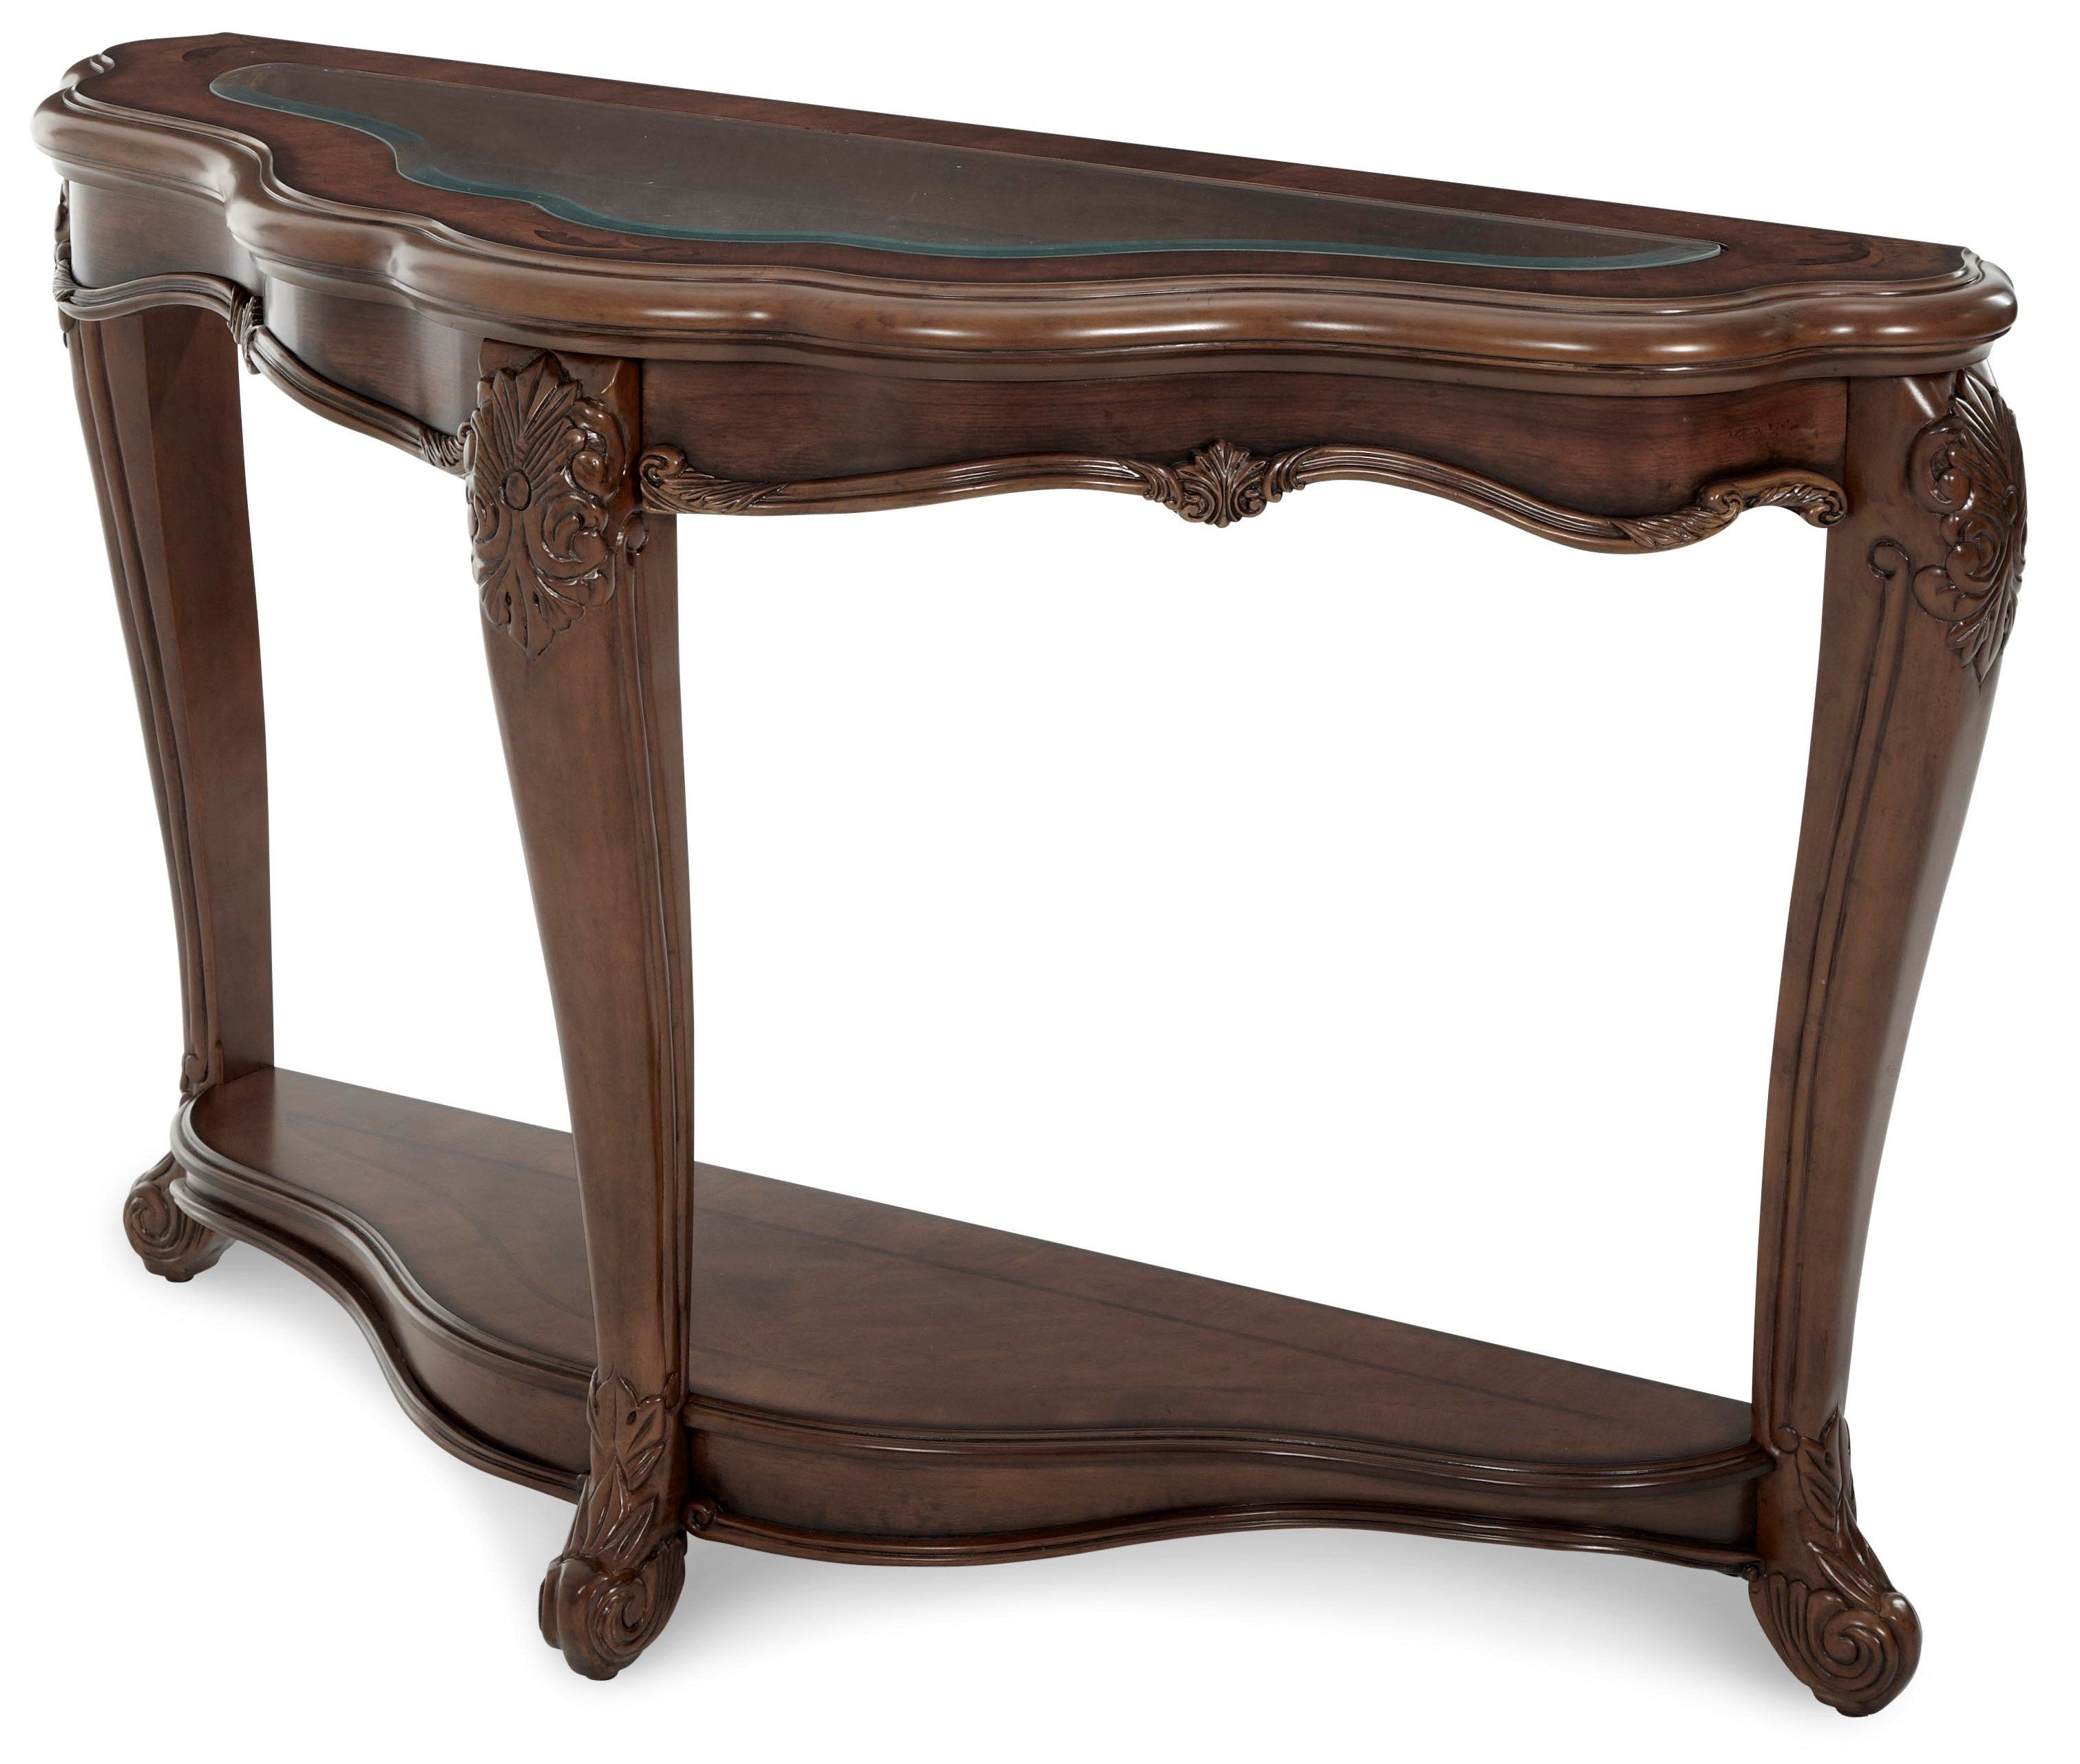 Palais royale sofa table from aico 71203 35 coleman for 35 console table